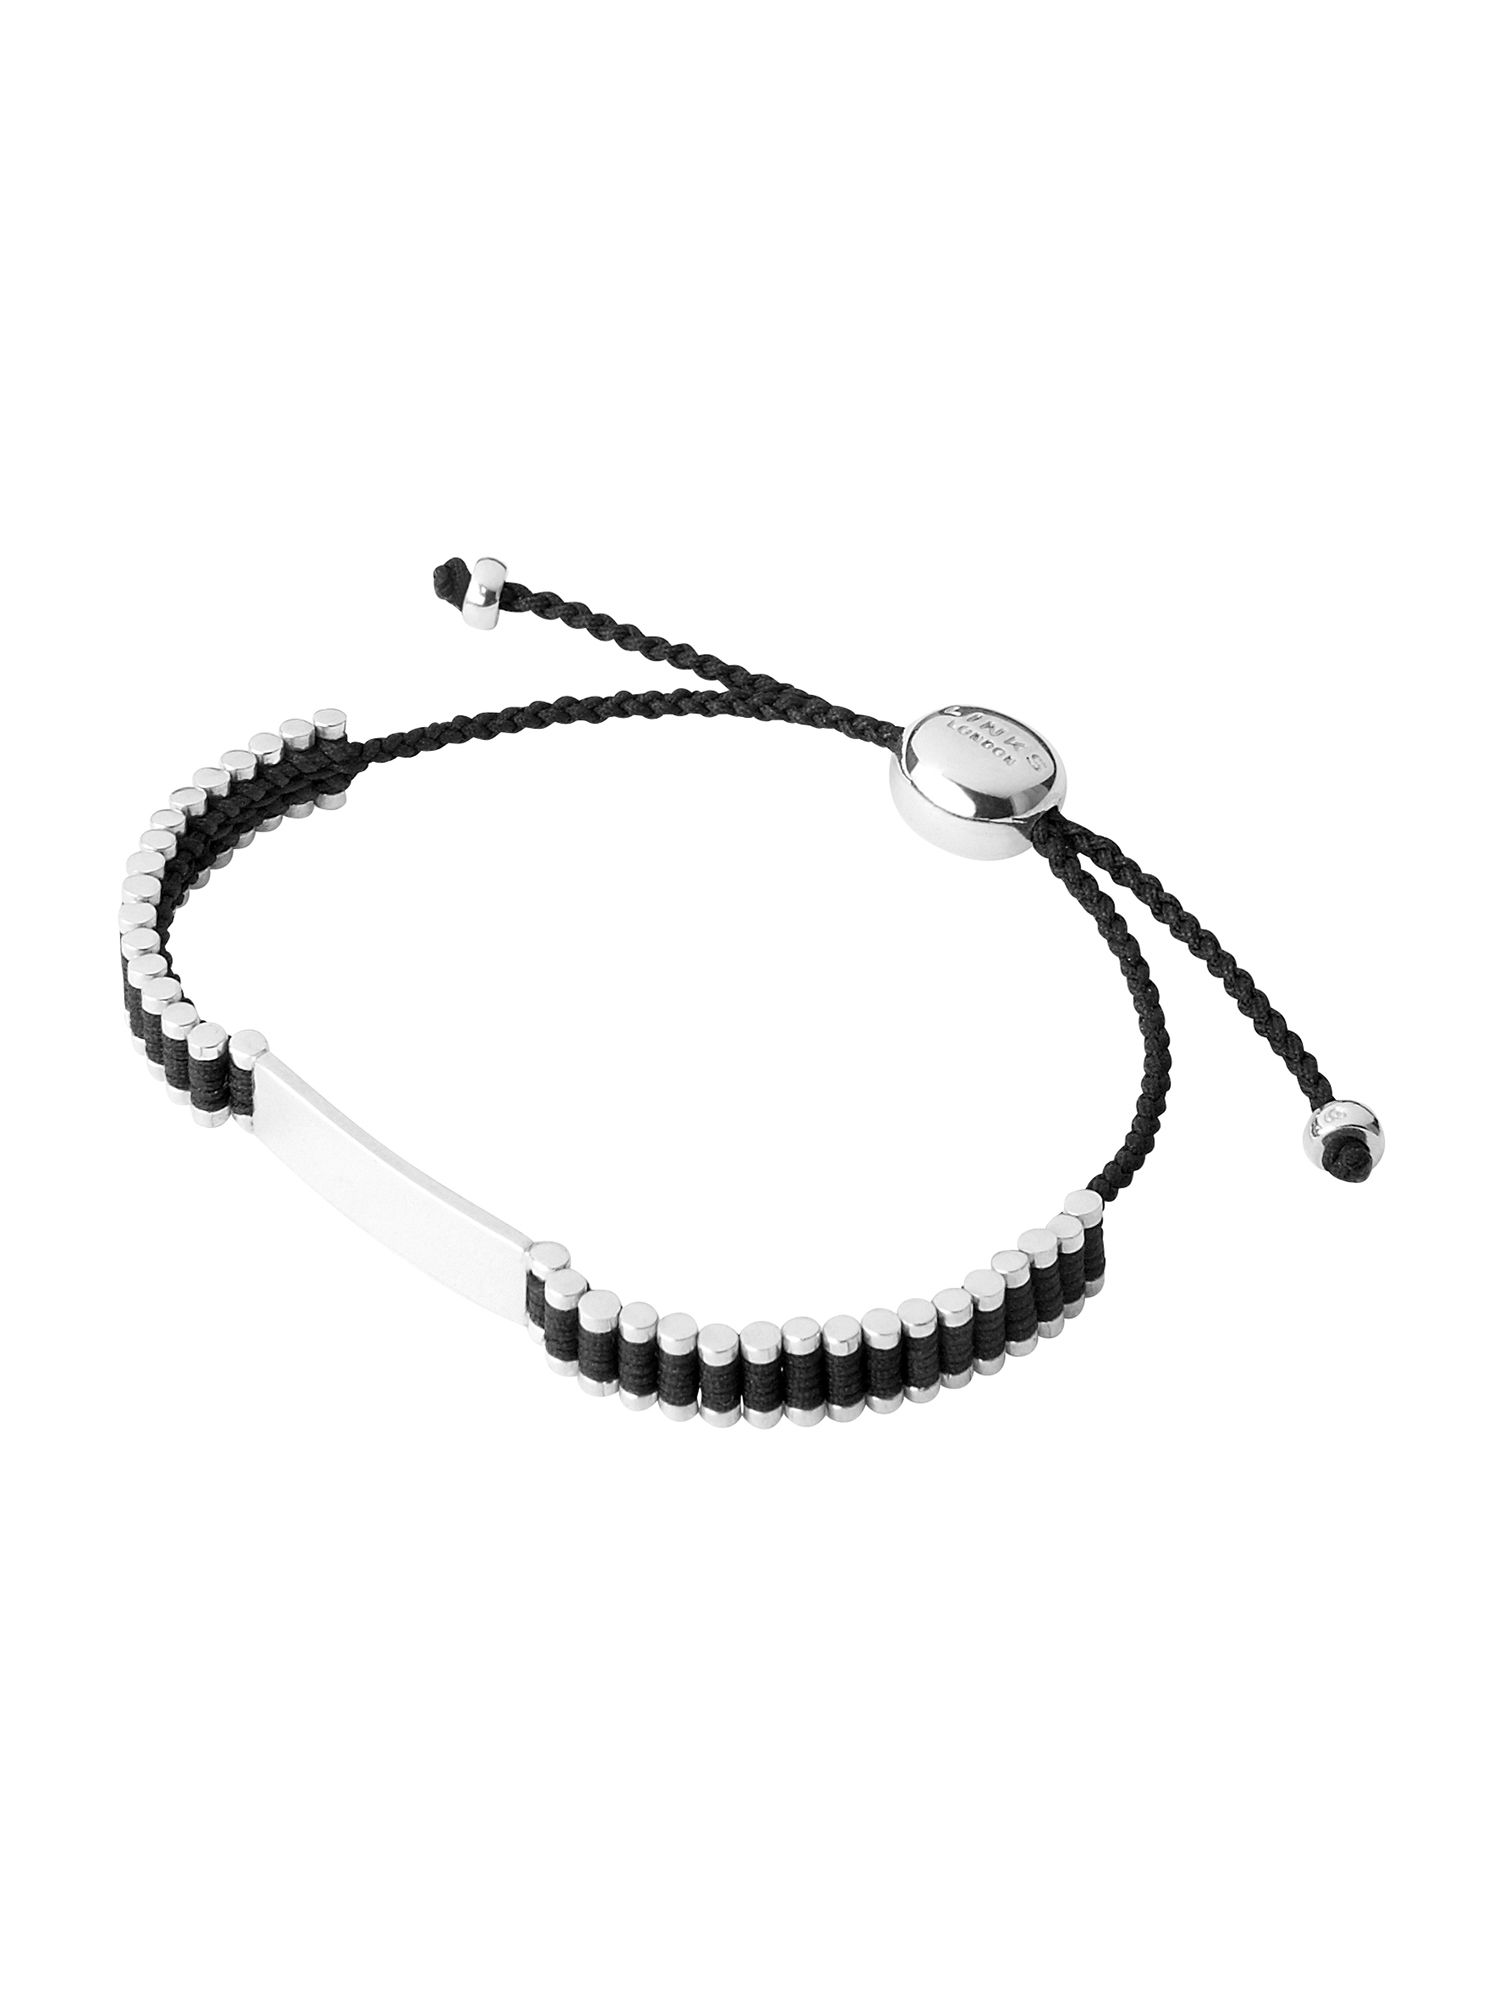 Friendship id bracelet black